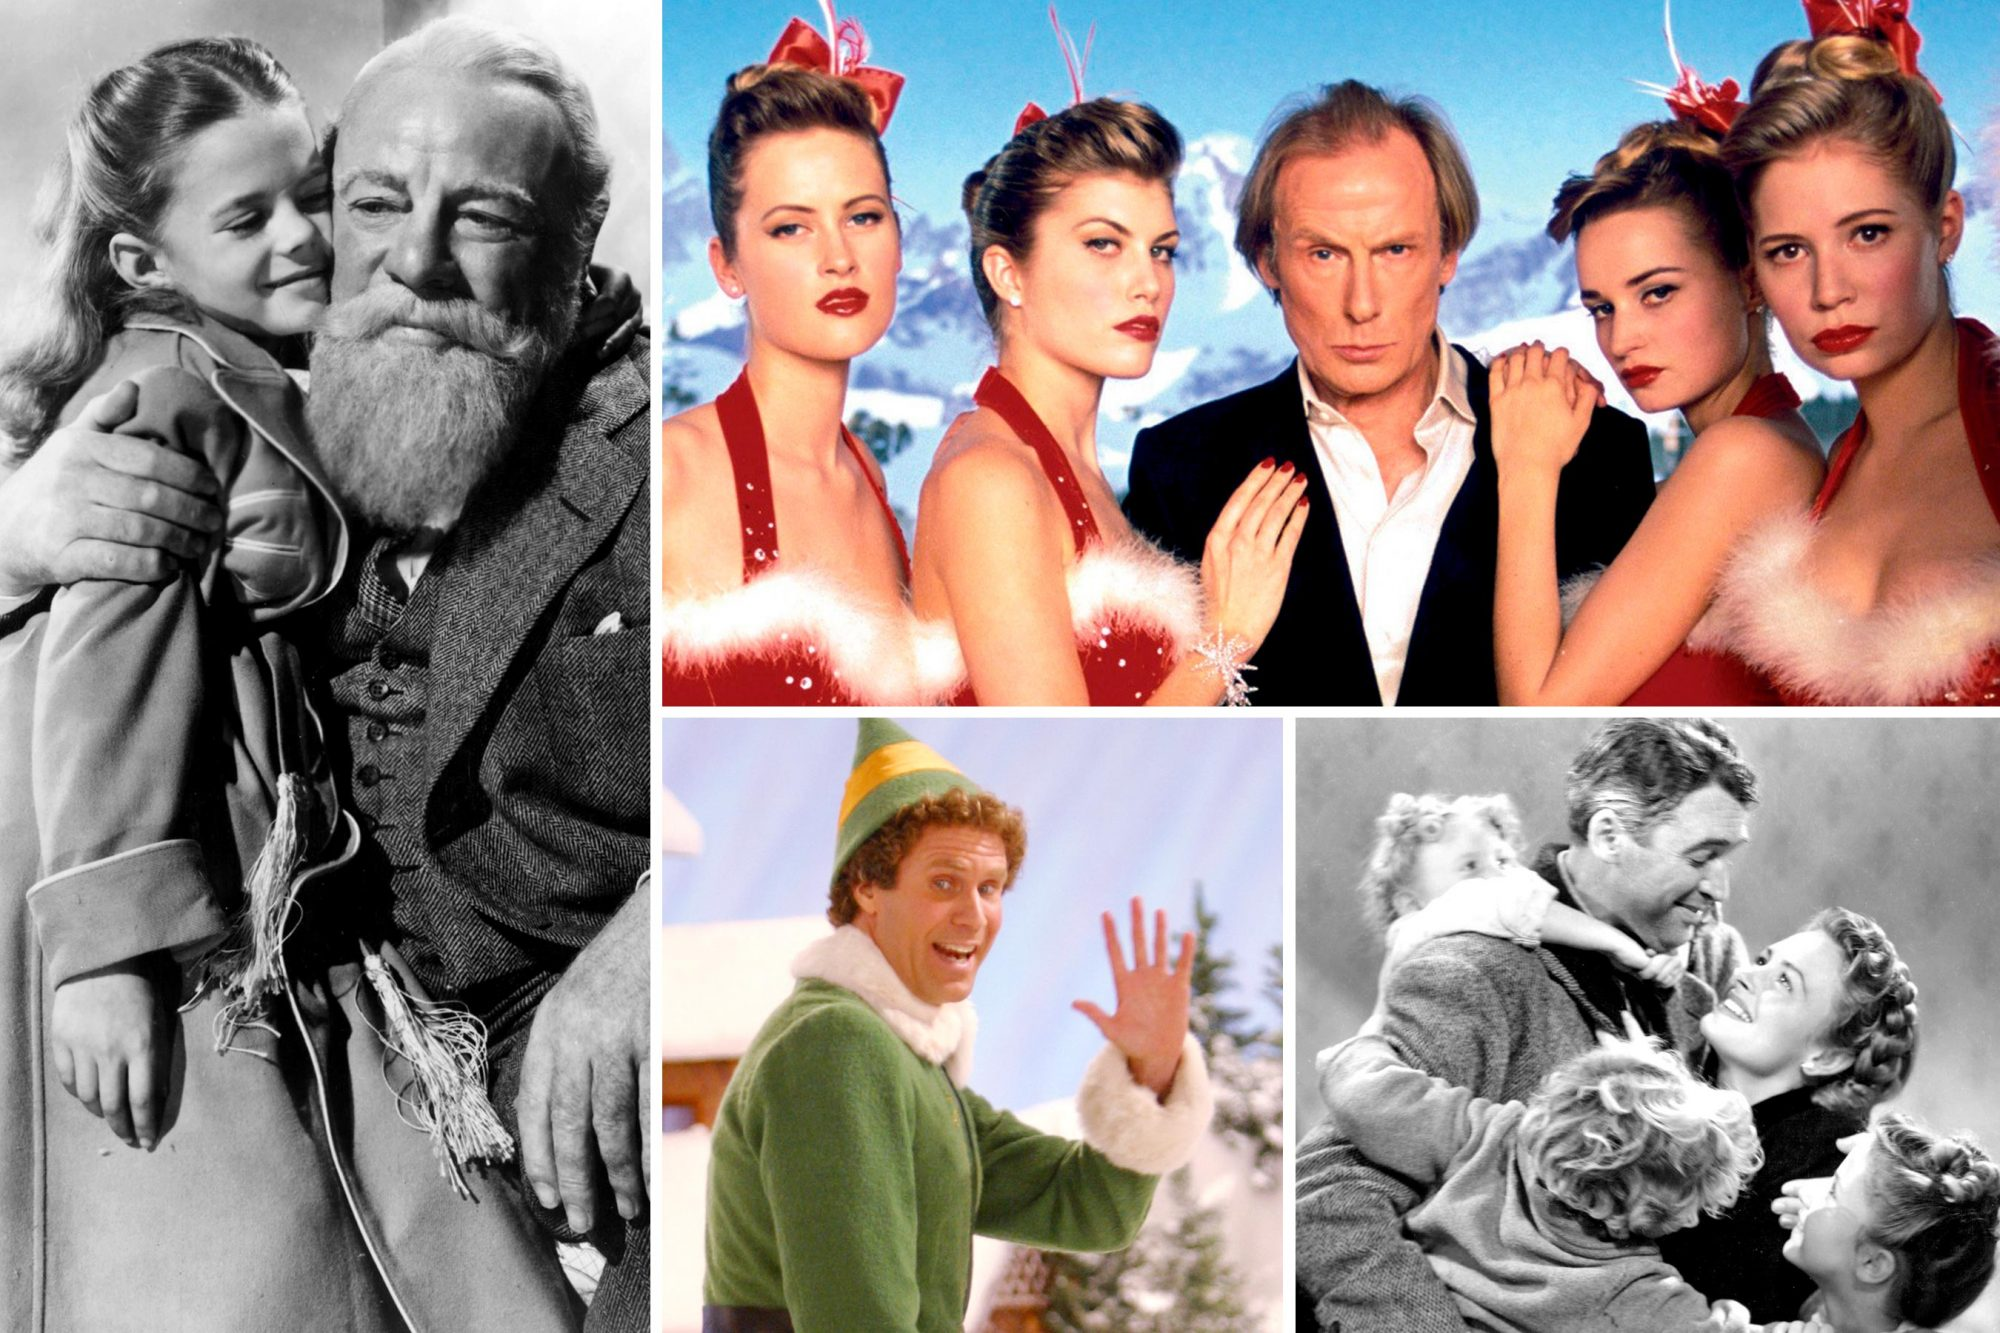 IT'S A WONDERFUL LIFE, MIRACLE ON 34TH ST, LOVE ACTUALLY, and ELF